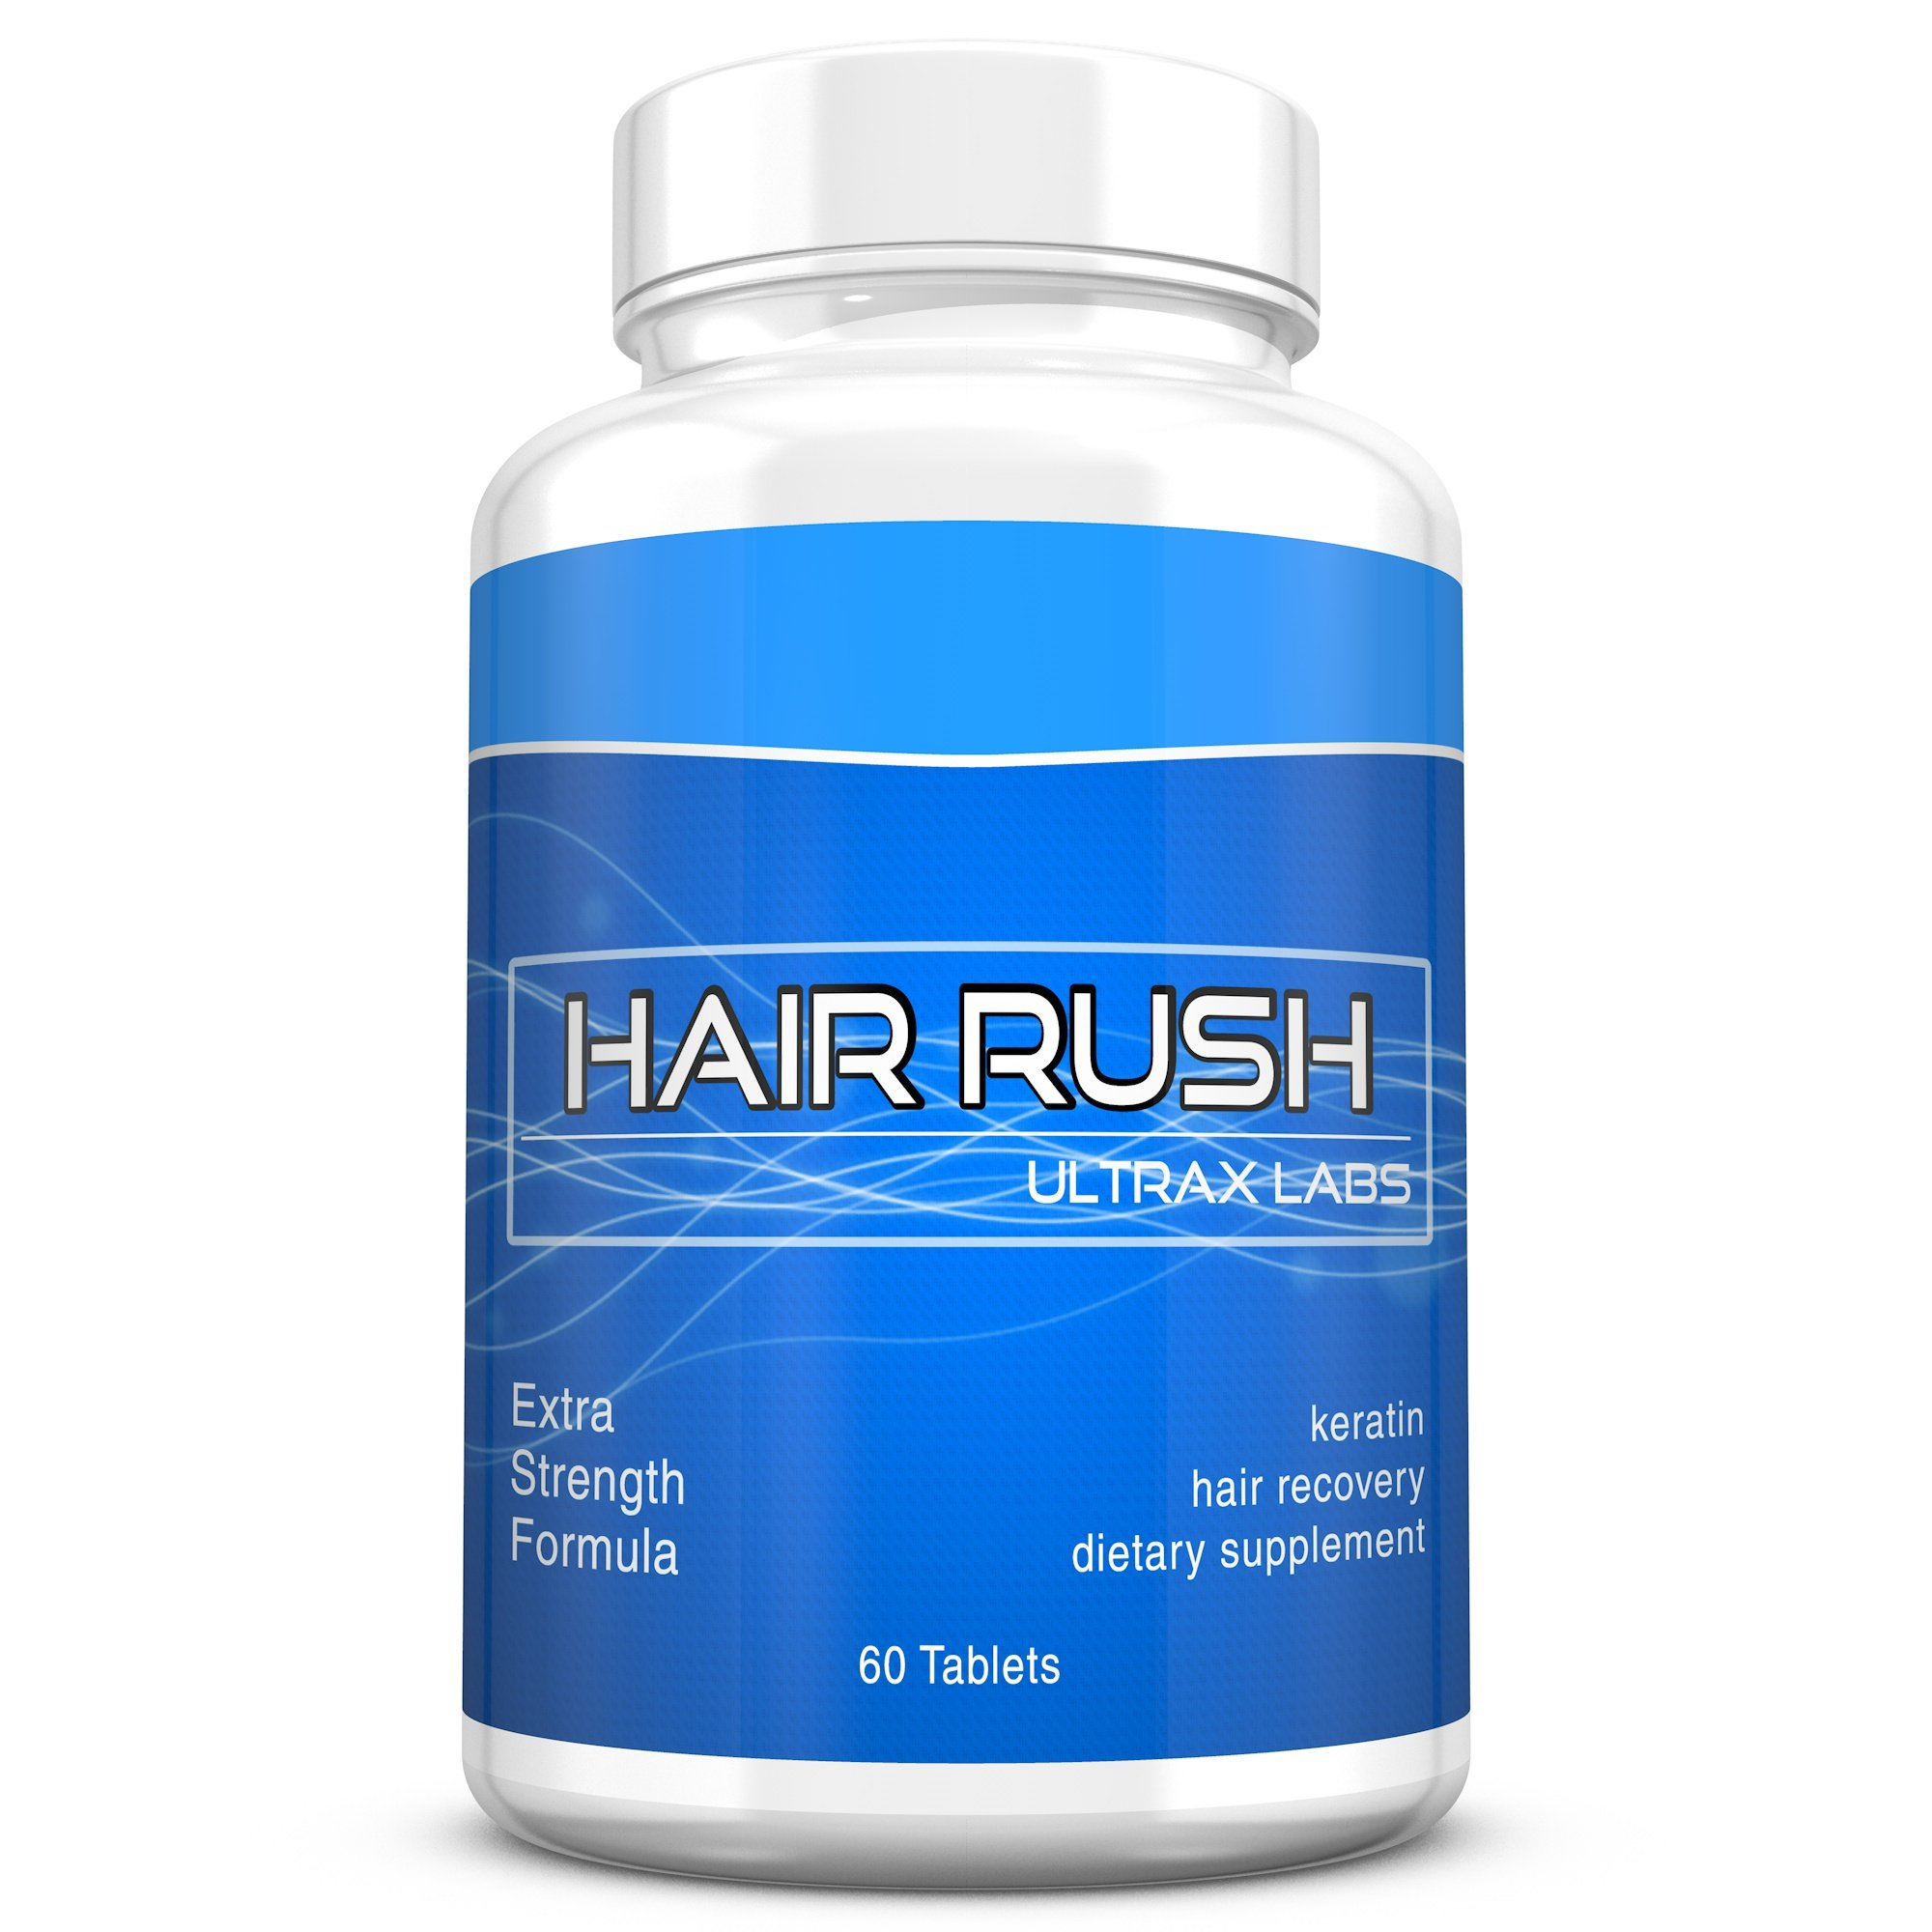 Ultrax Labs Hair Rush | Maxx Hair Growth & Anti Hair Loss Nutrient Solubilized Keratin Vitamin Supplement